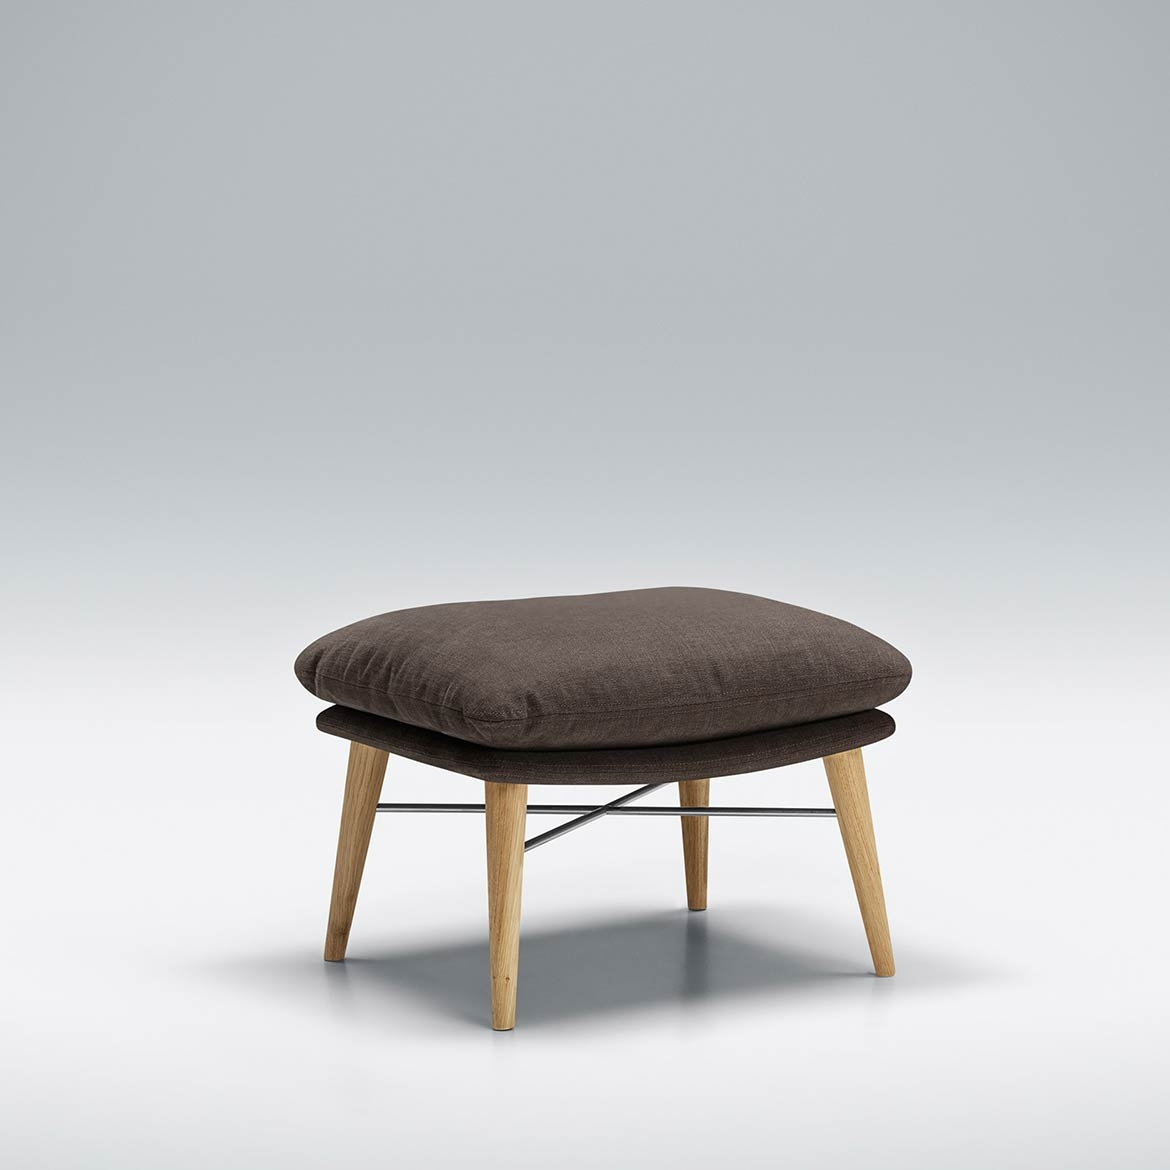 Zed footstool with wooden feet